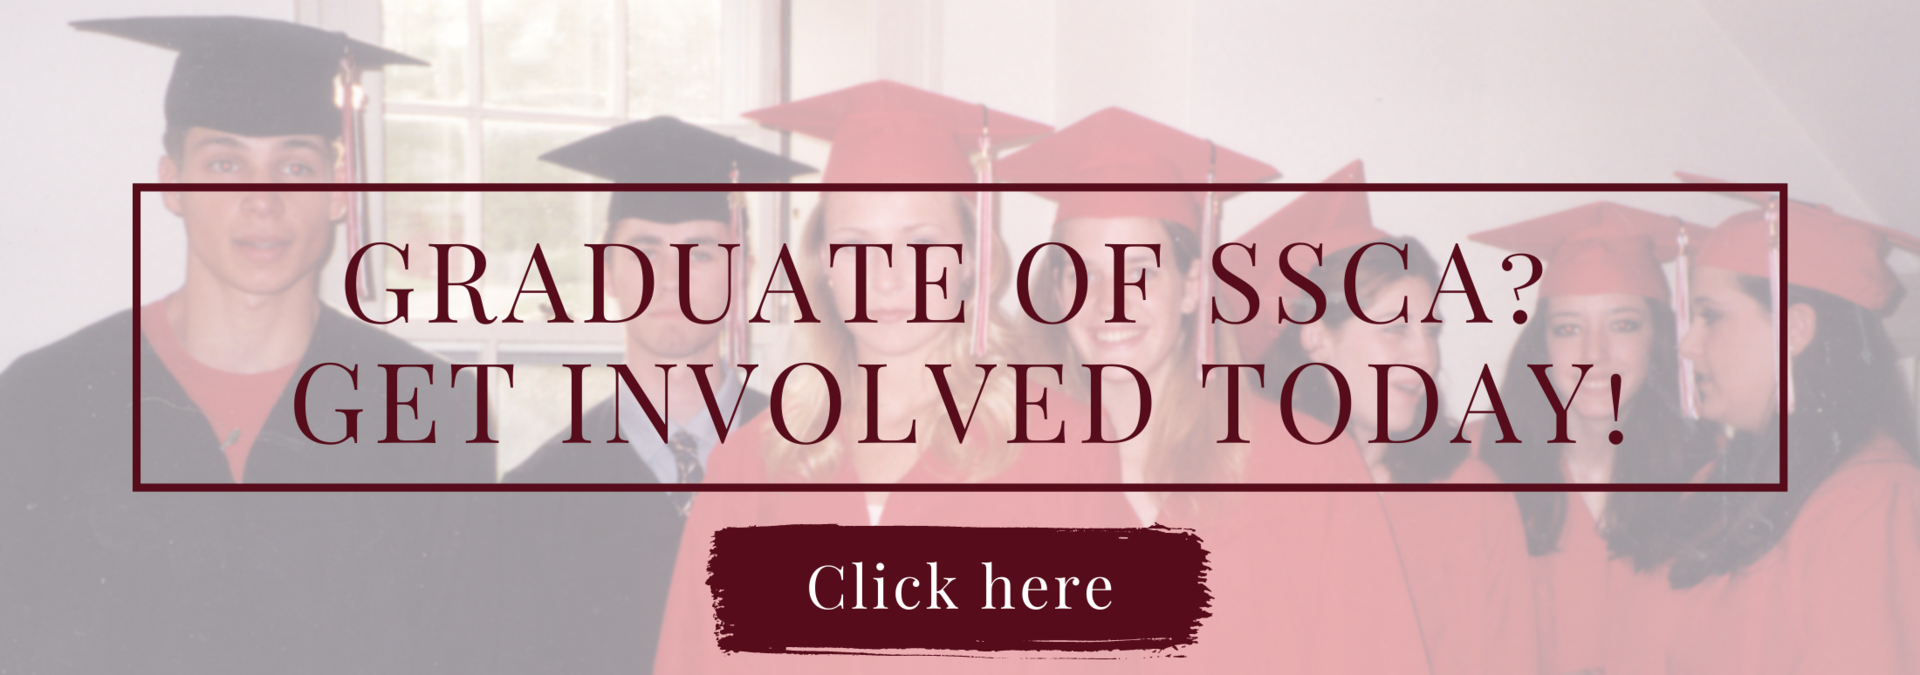 Graduate of SSCA? Get involved today!